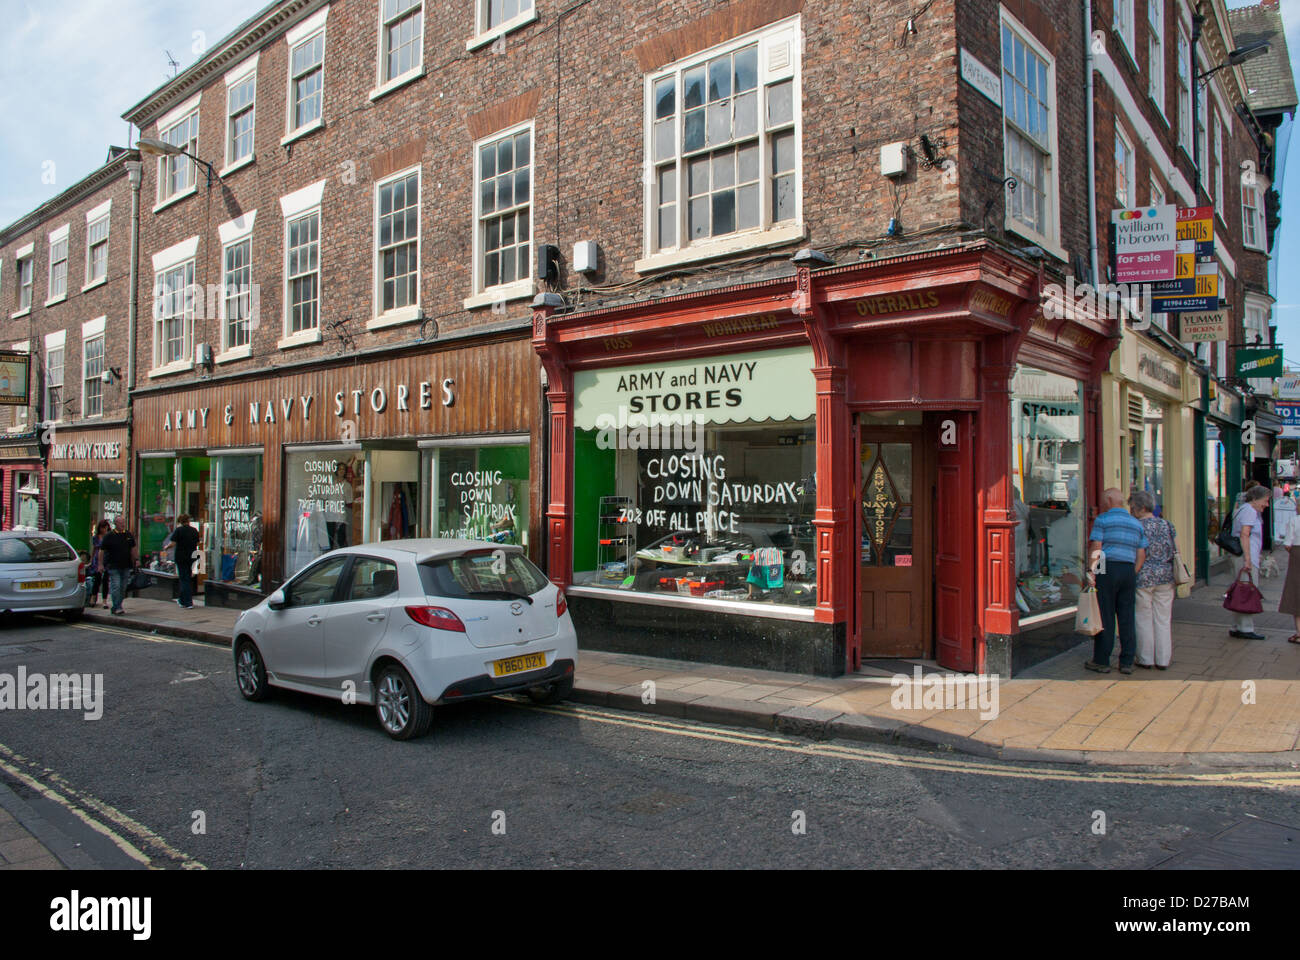 Army and Navy Stores York, retailer of work and outdoor clothes - Stock Image